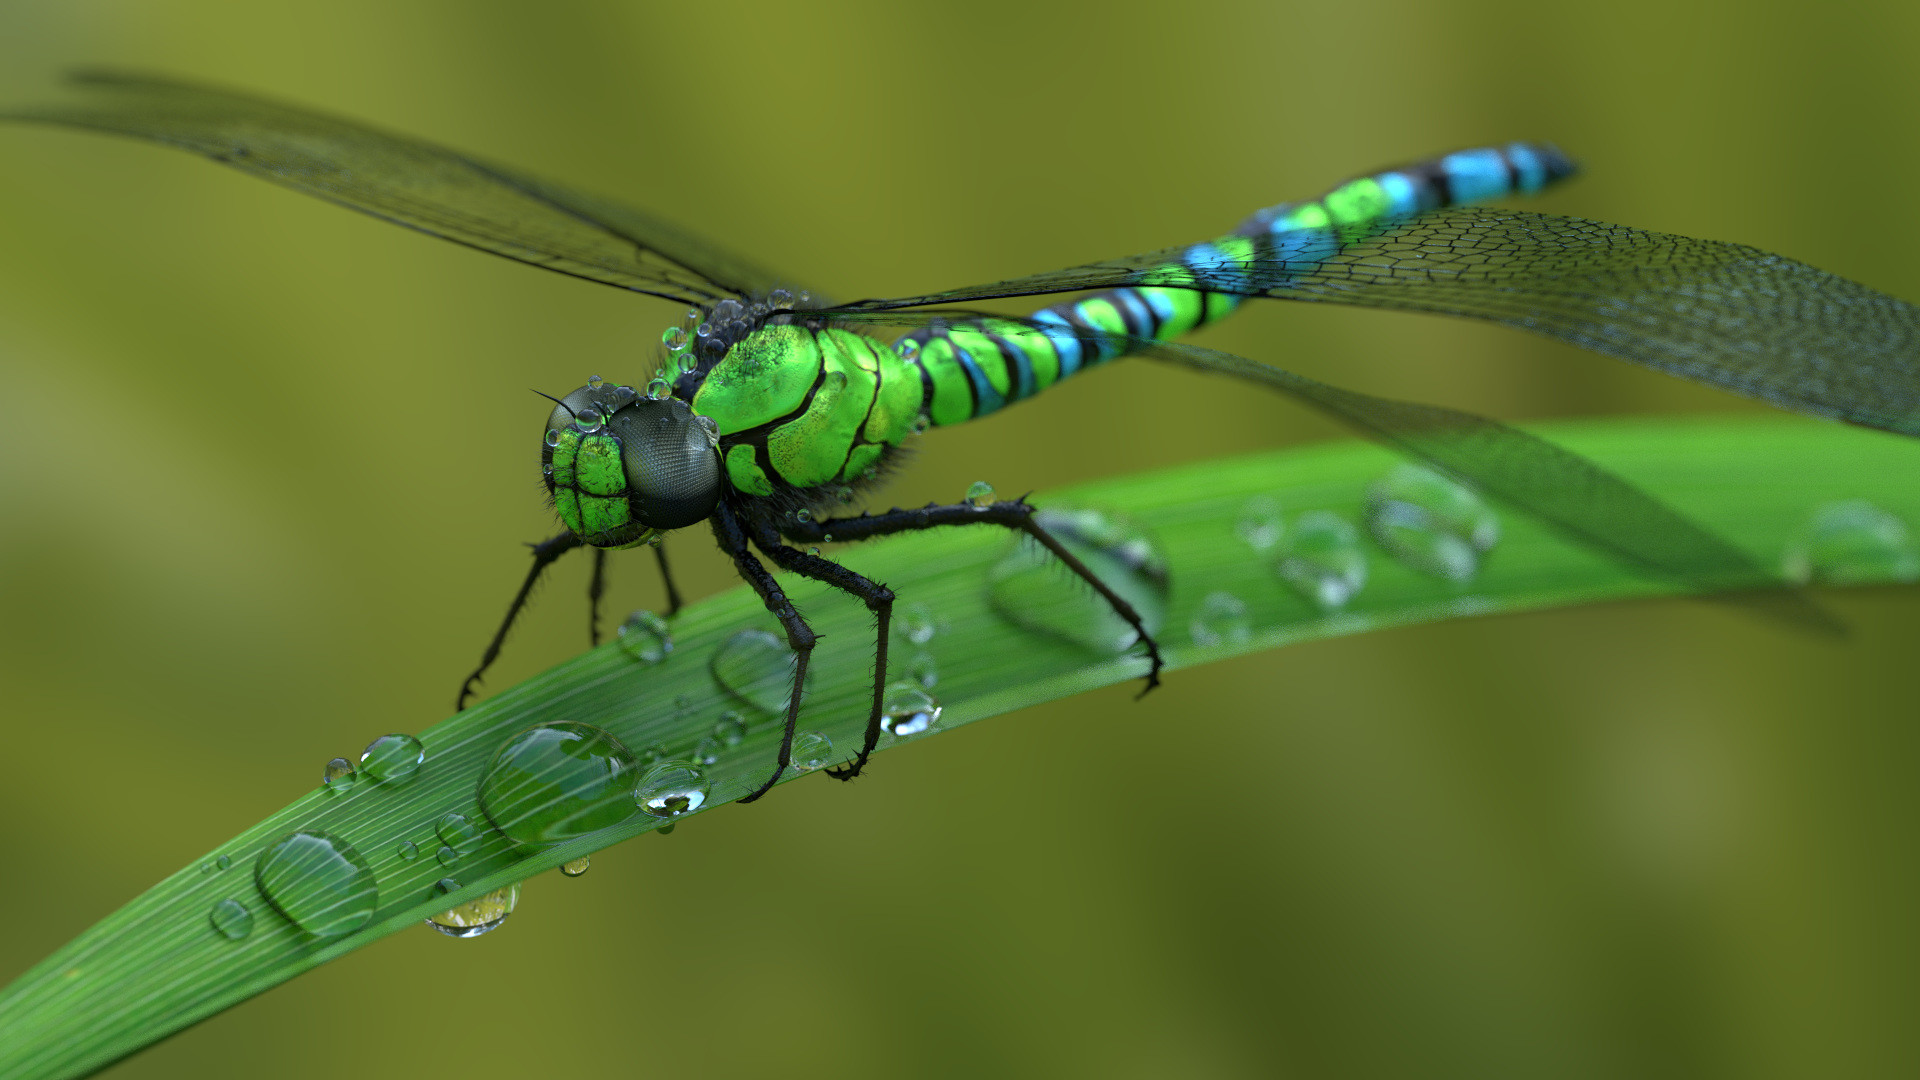 Green Blue Dragonfly Wallpaper HD